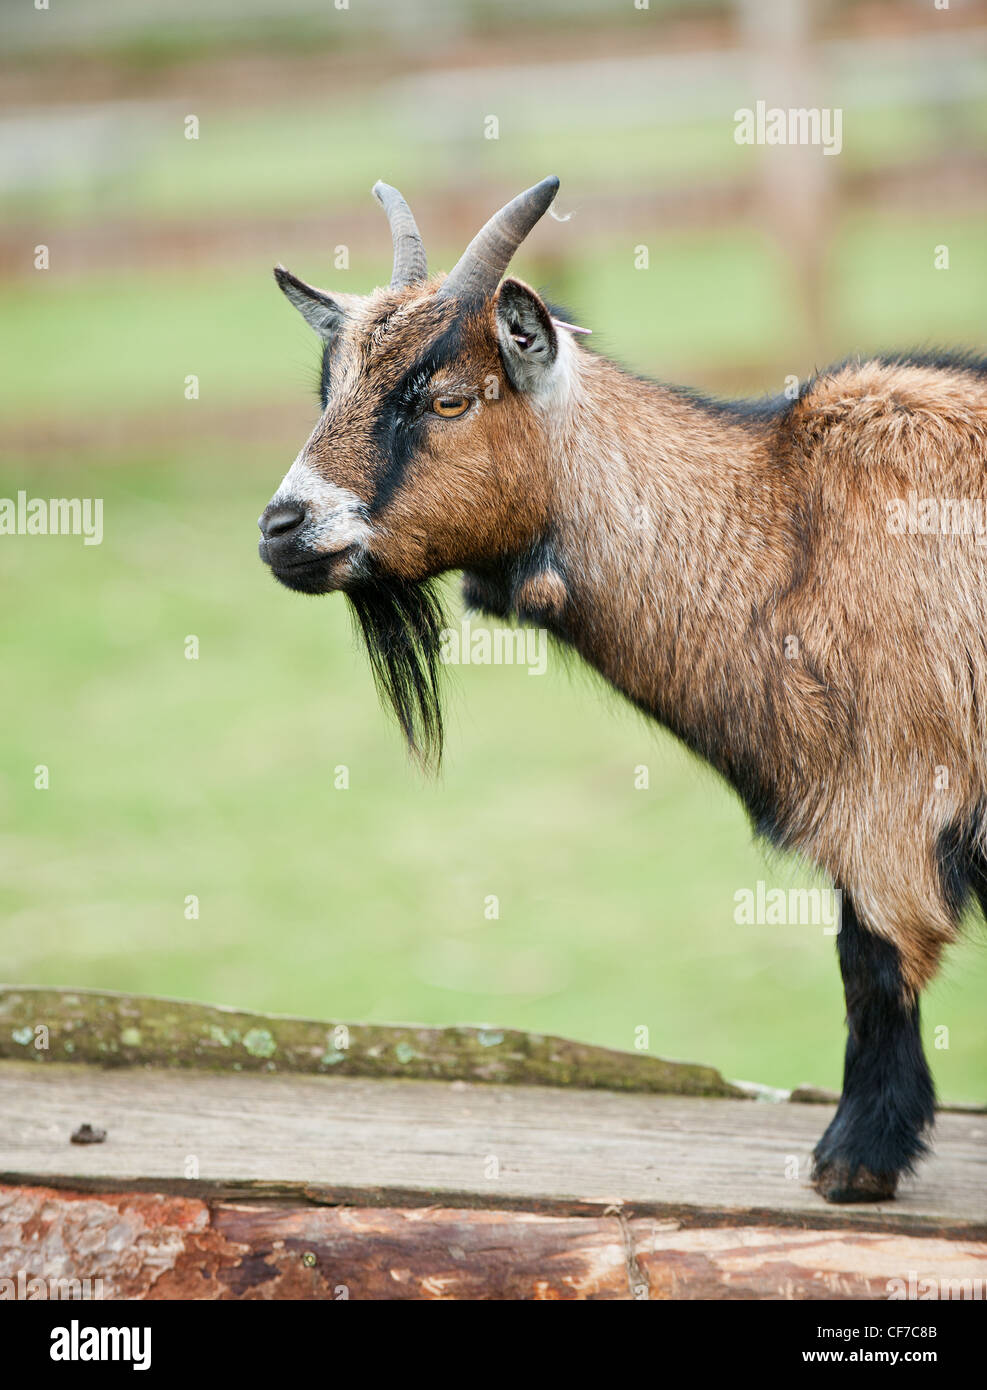 A Pygmy Goat at the Paradise Park Wildife Sanctuary in Cornwall - Stock Image